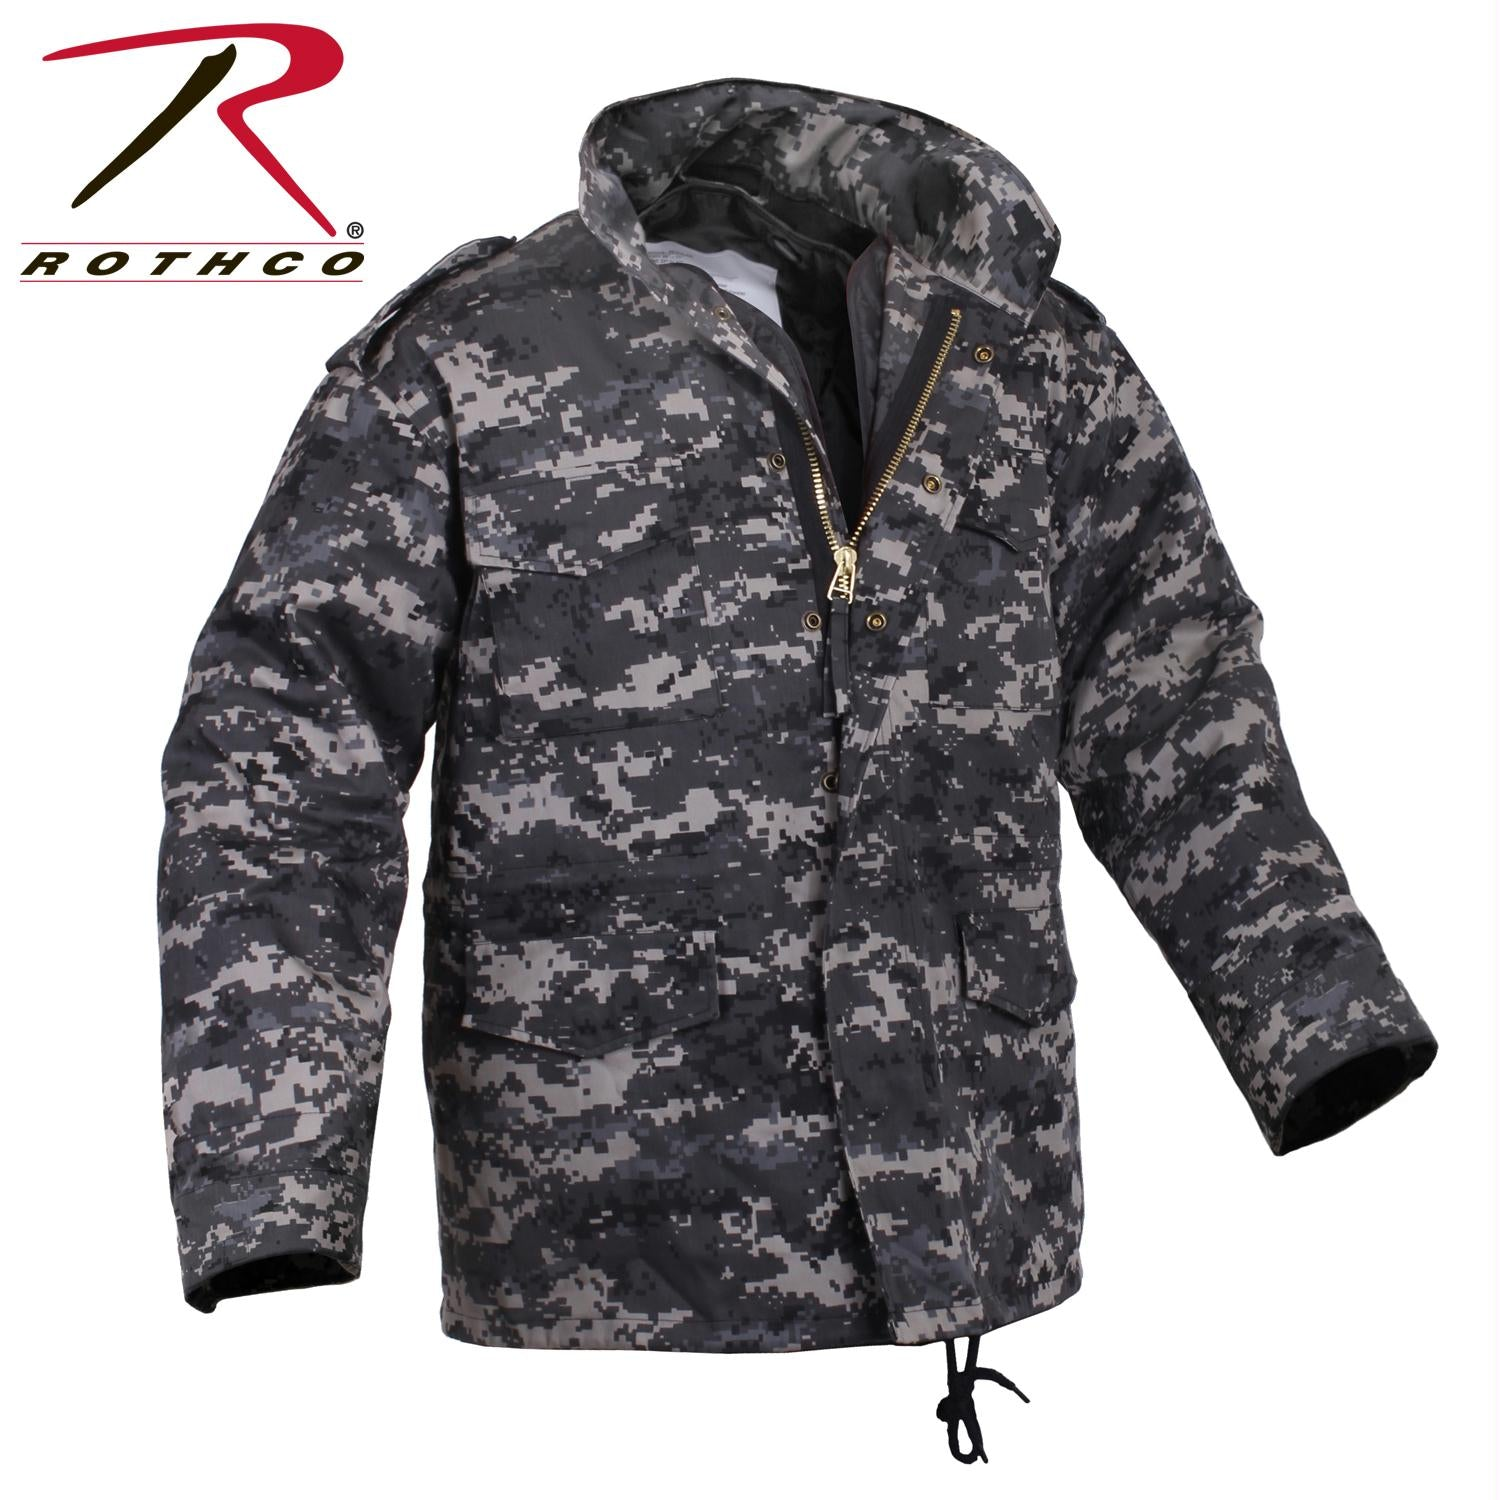 Rothco M-65 Camo Field Jacket - Subdued Urban Digital Camo / XL